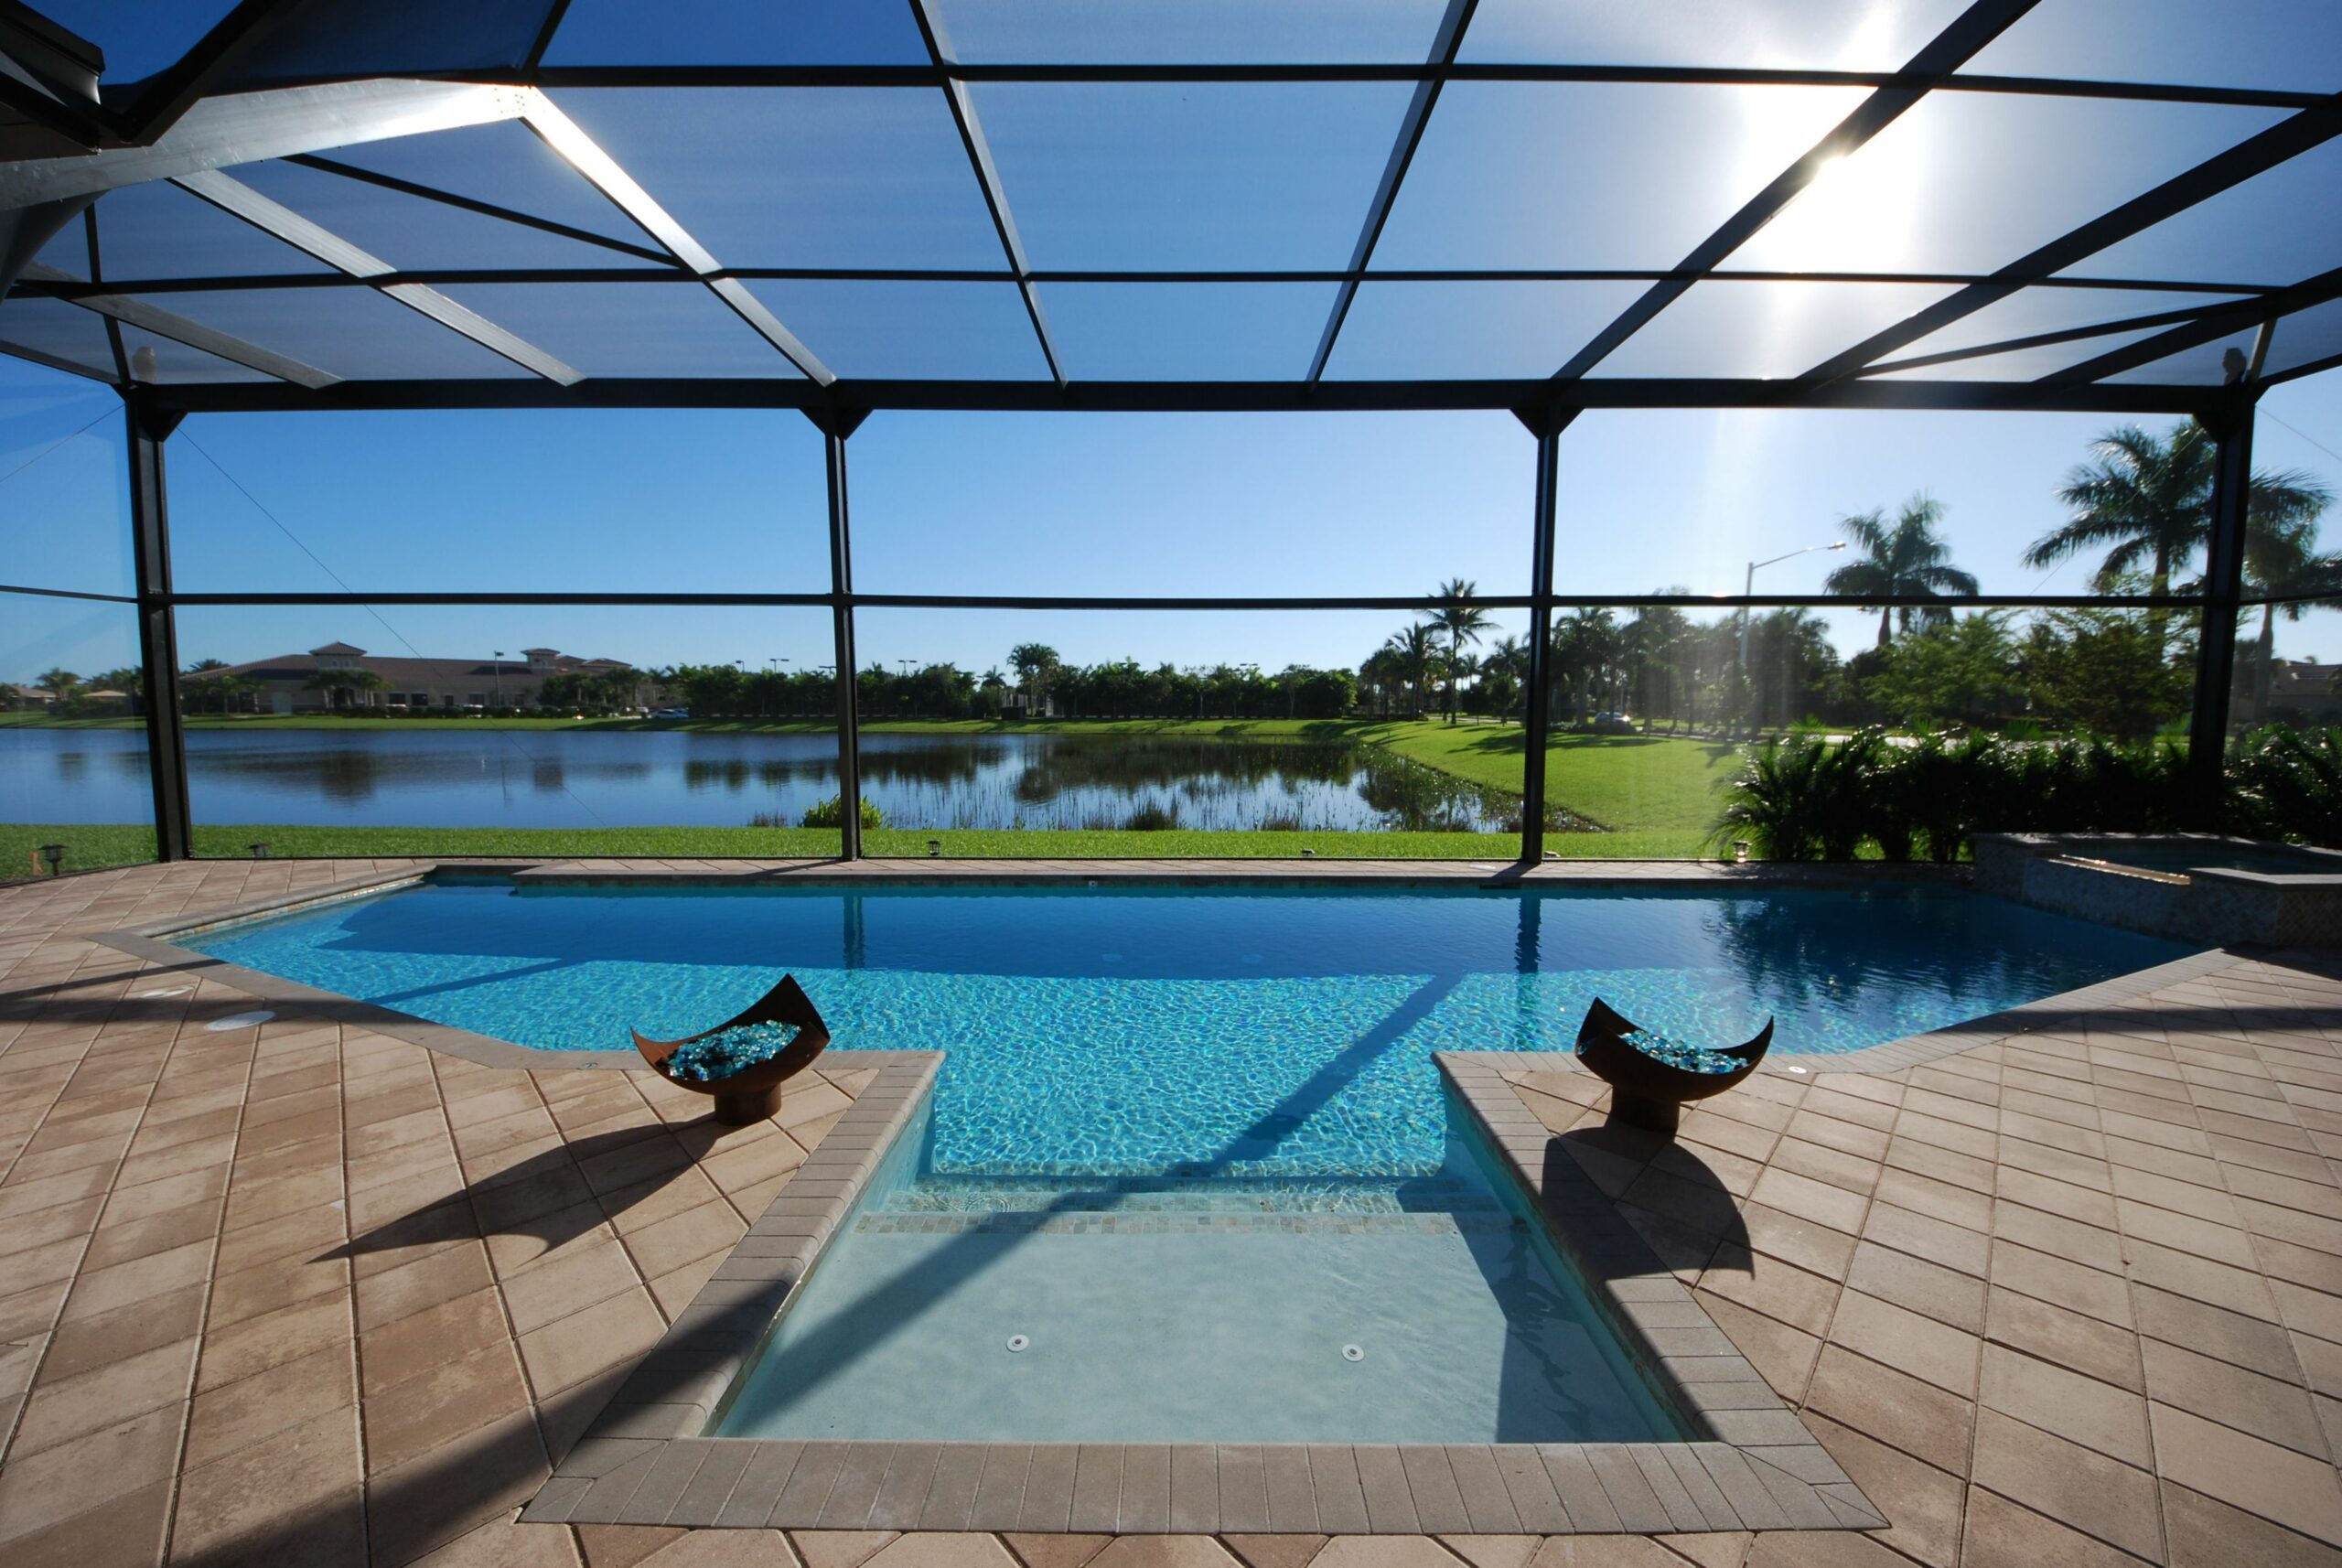 modern pool enclosure with picture windows (With images) | Pool ..